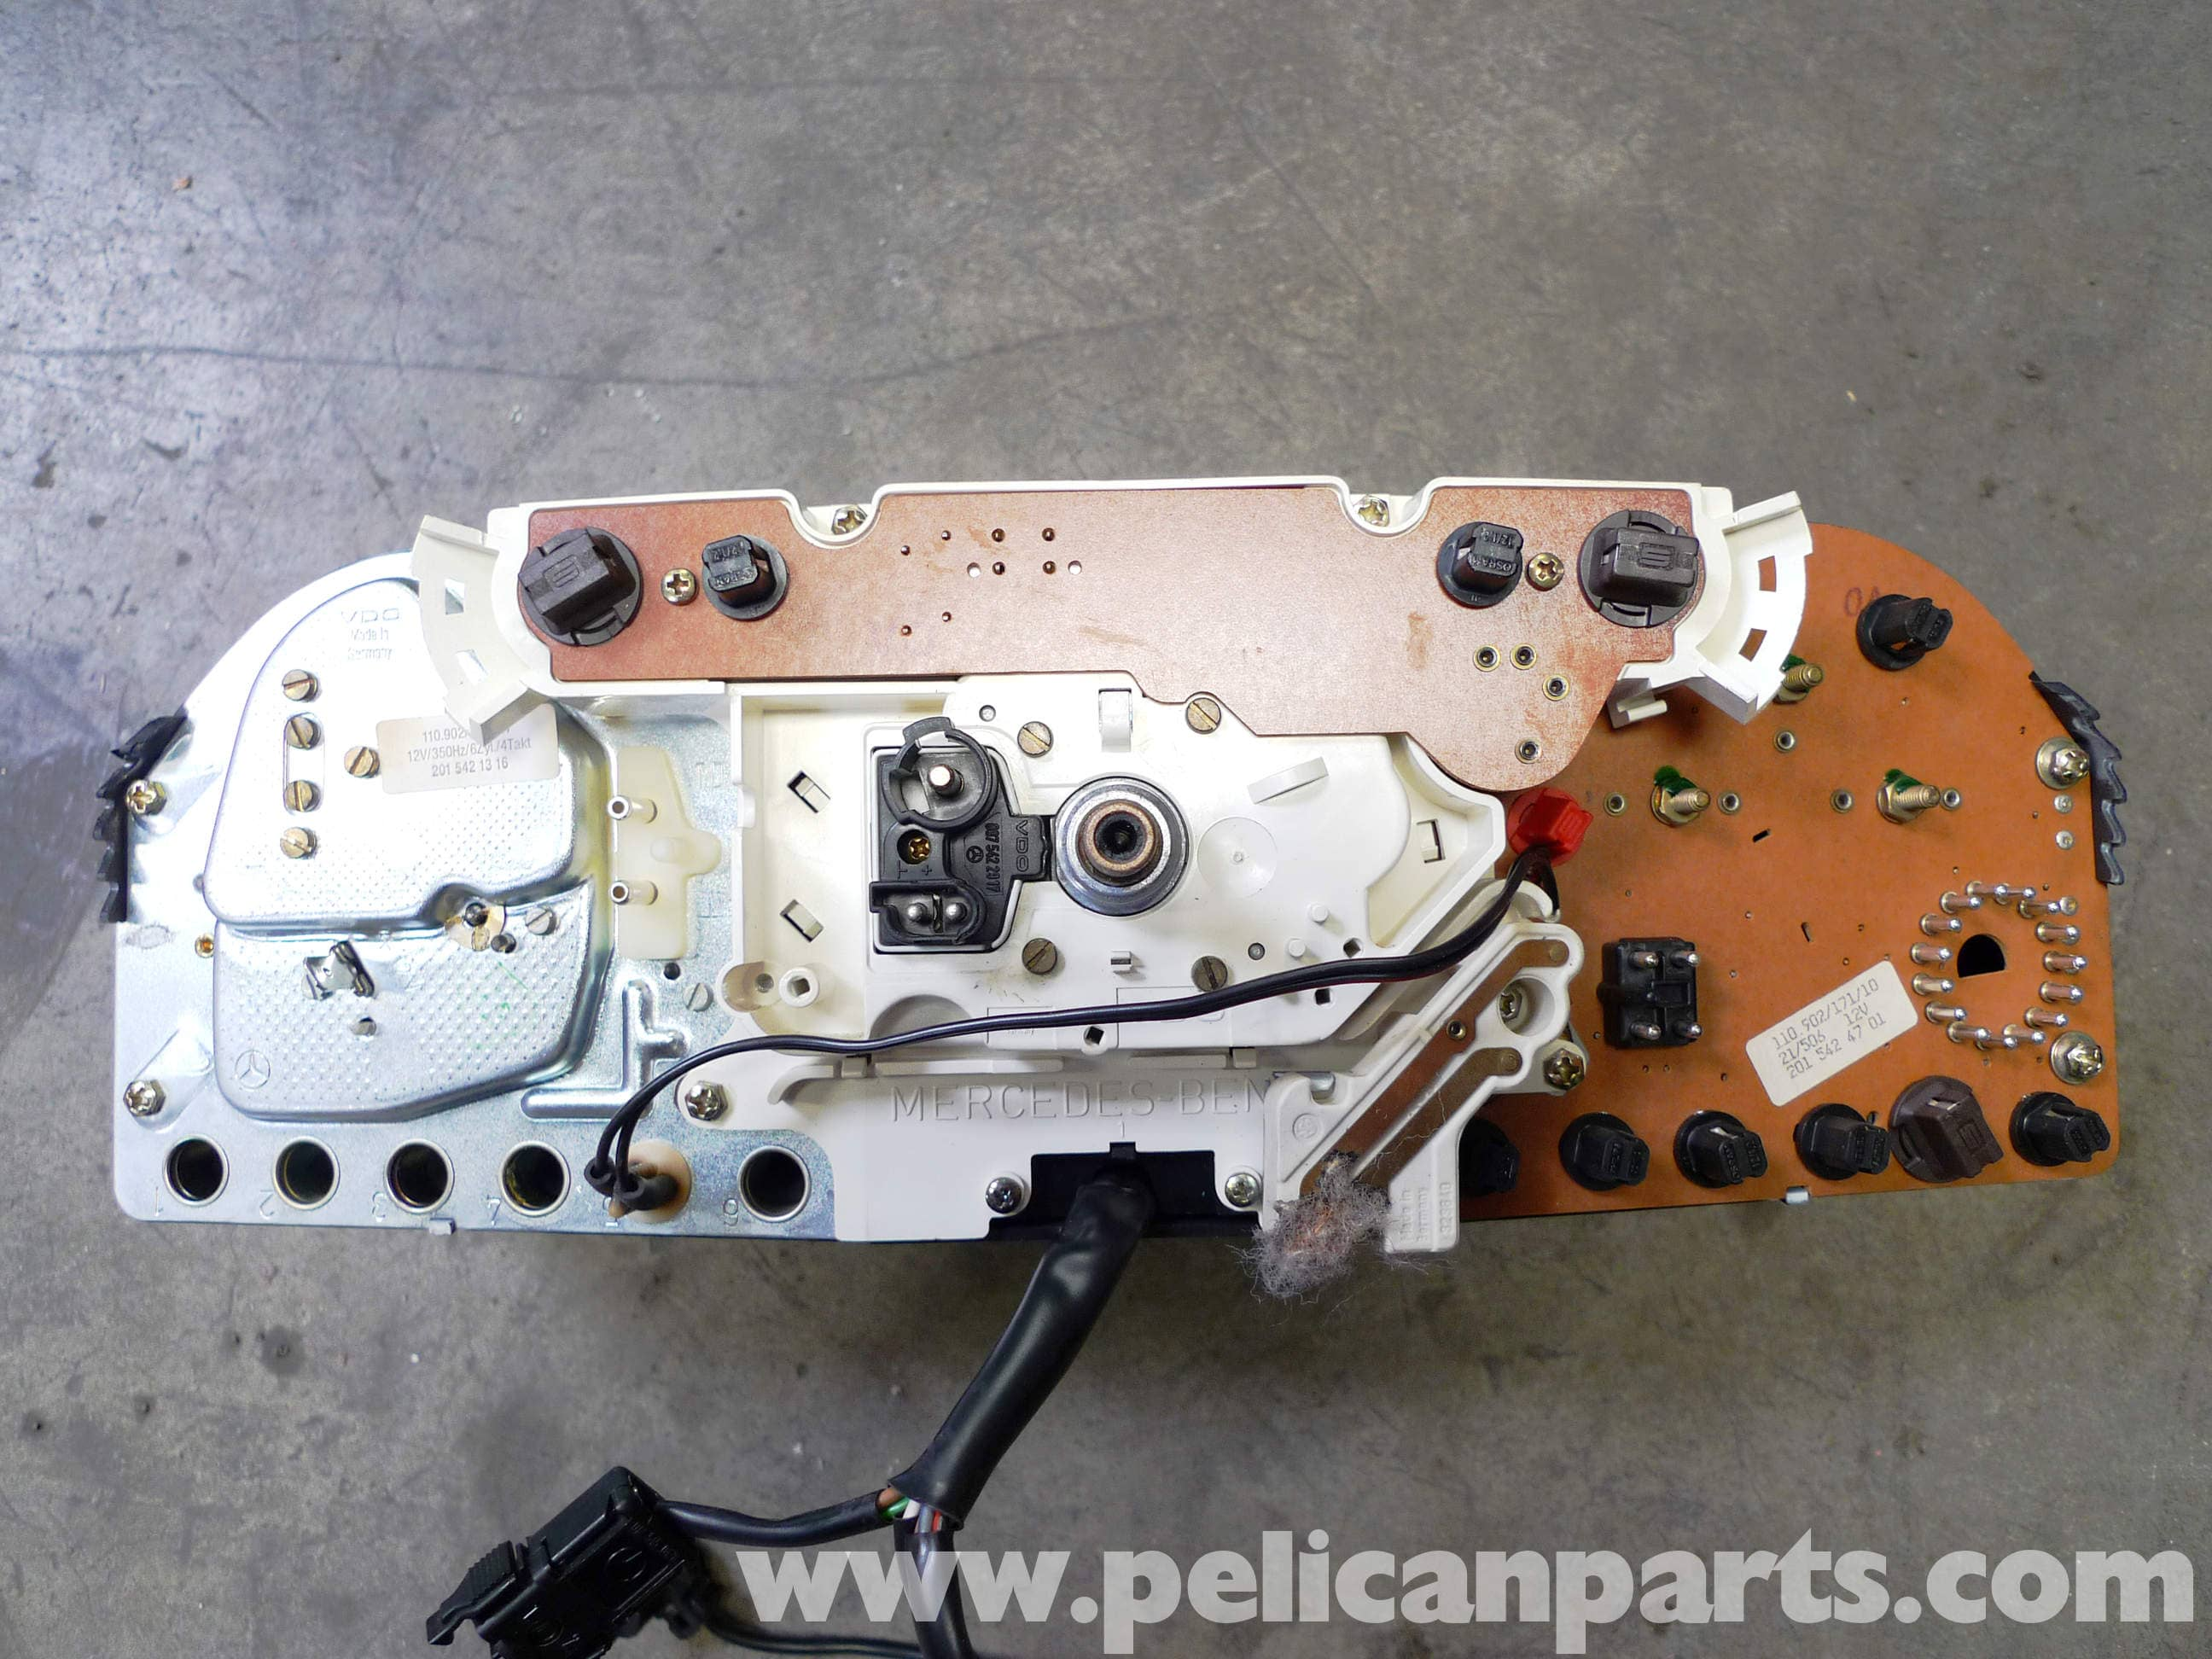 Mercedes Benz 190e Instrument Cluster Removal W201 1987 1993 1991 Bmw E30 Instrut Wiring Large Image Extra